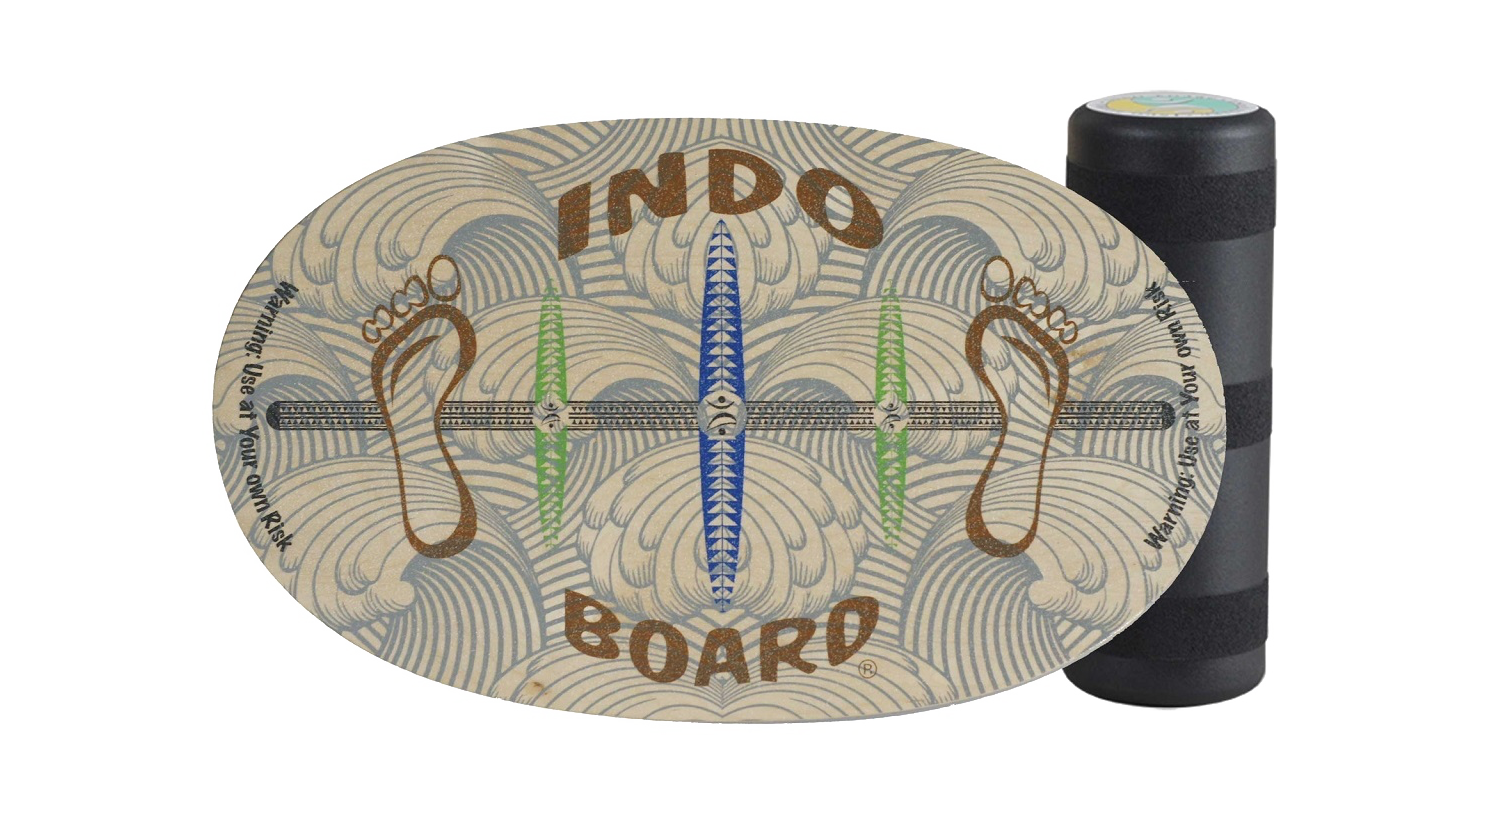 Indo Board - original-barafoot copy